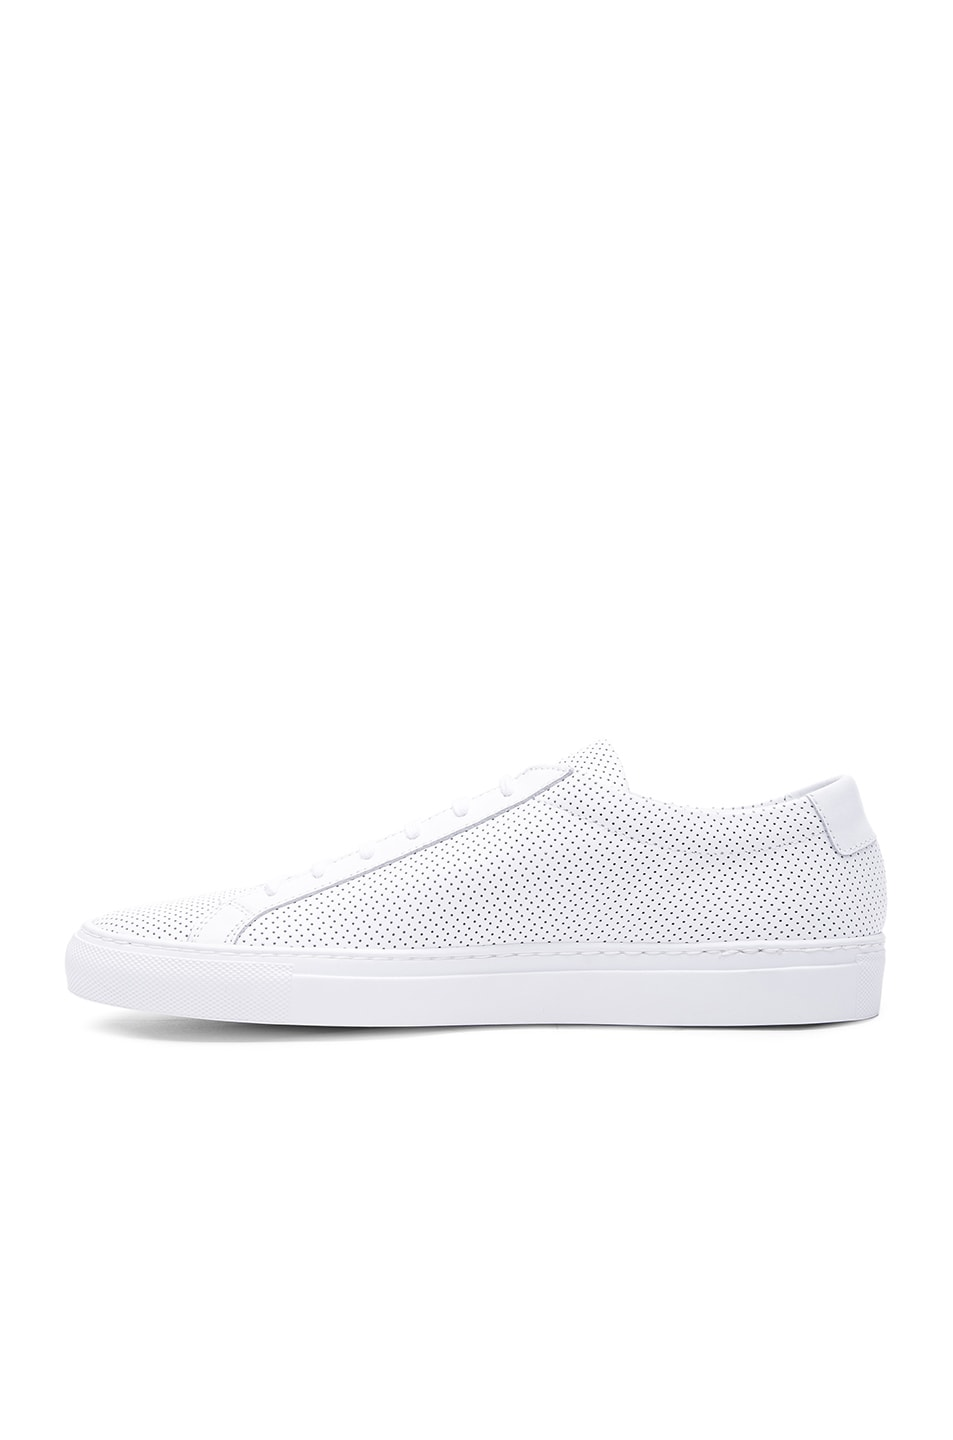 Image 5 of Common Projects Original Perforated Leather Achilles Low in White